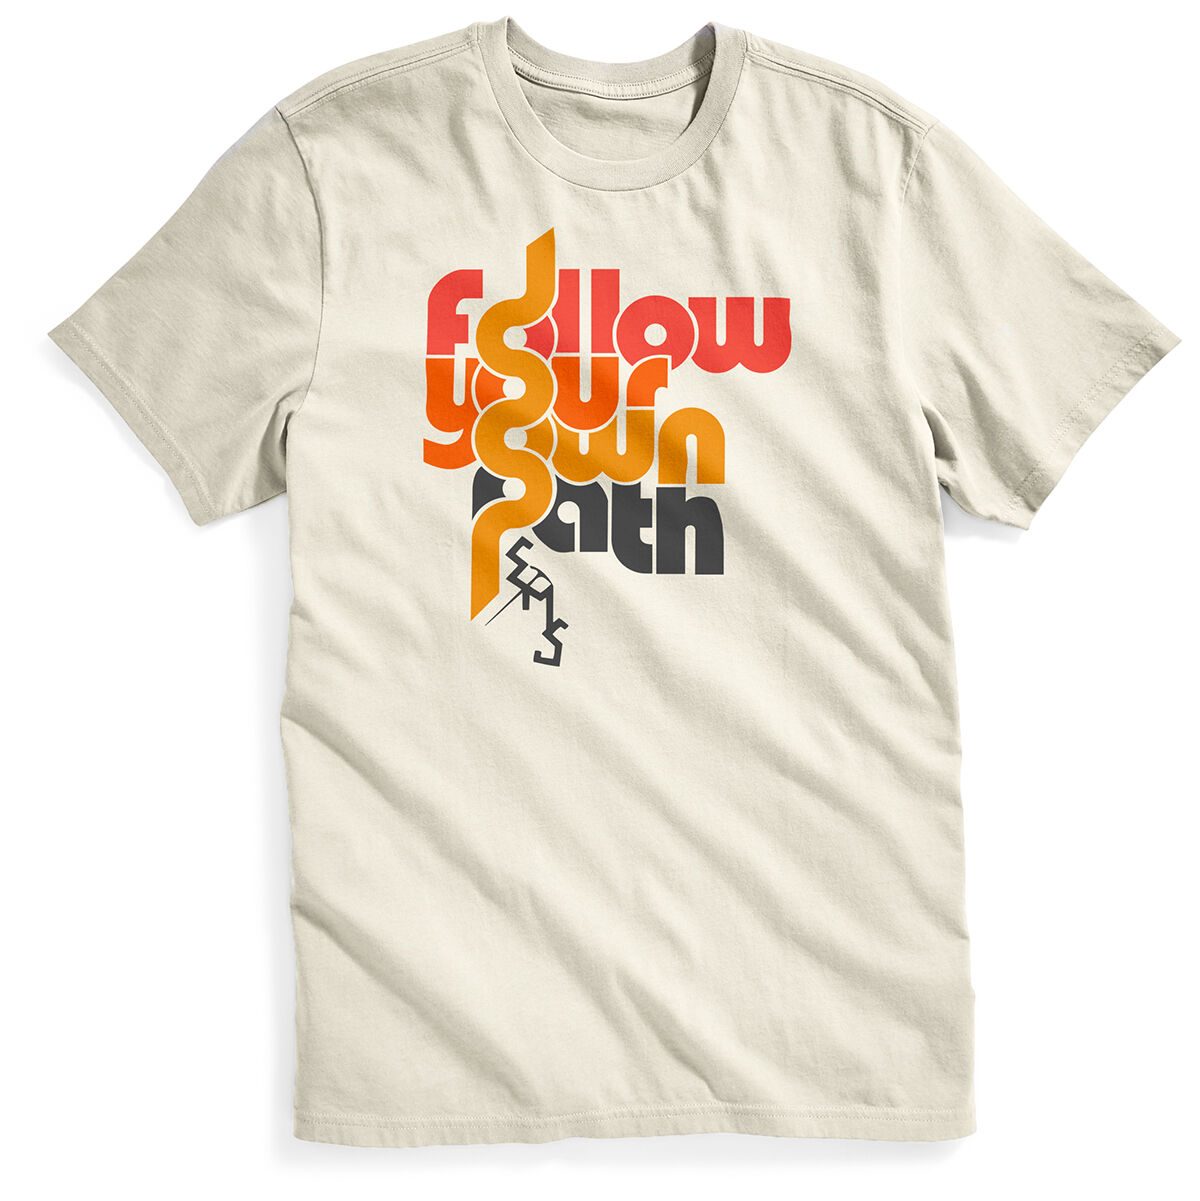 Ems Men's Follow Your Own Path Short-Sleeve Graphic Tee - White, M